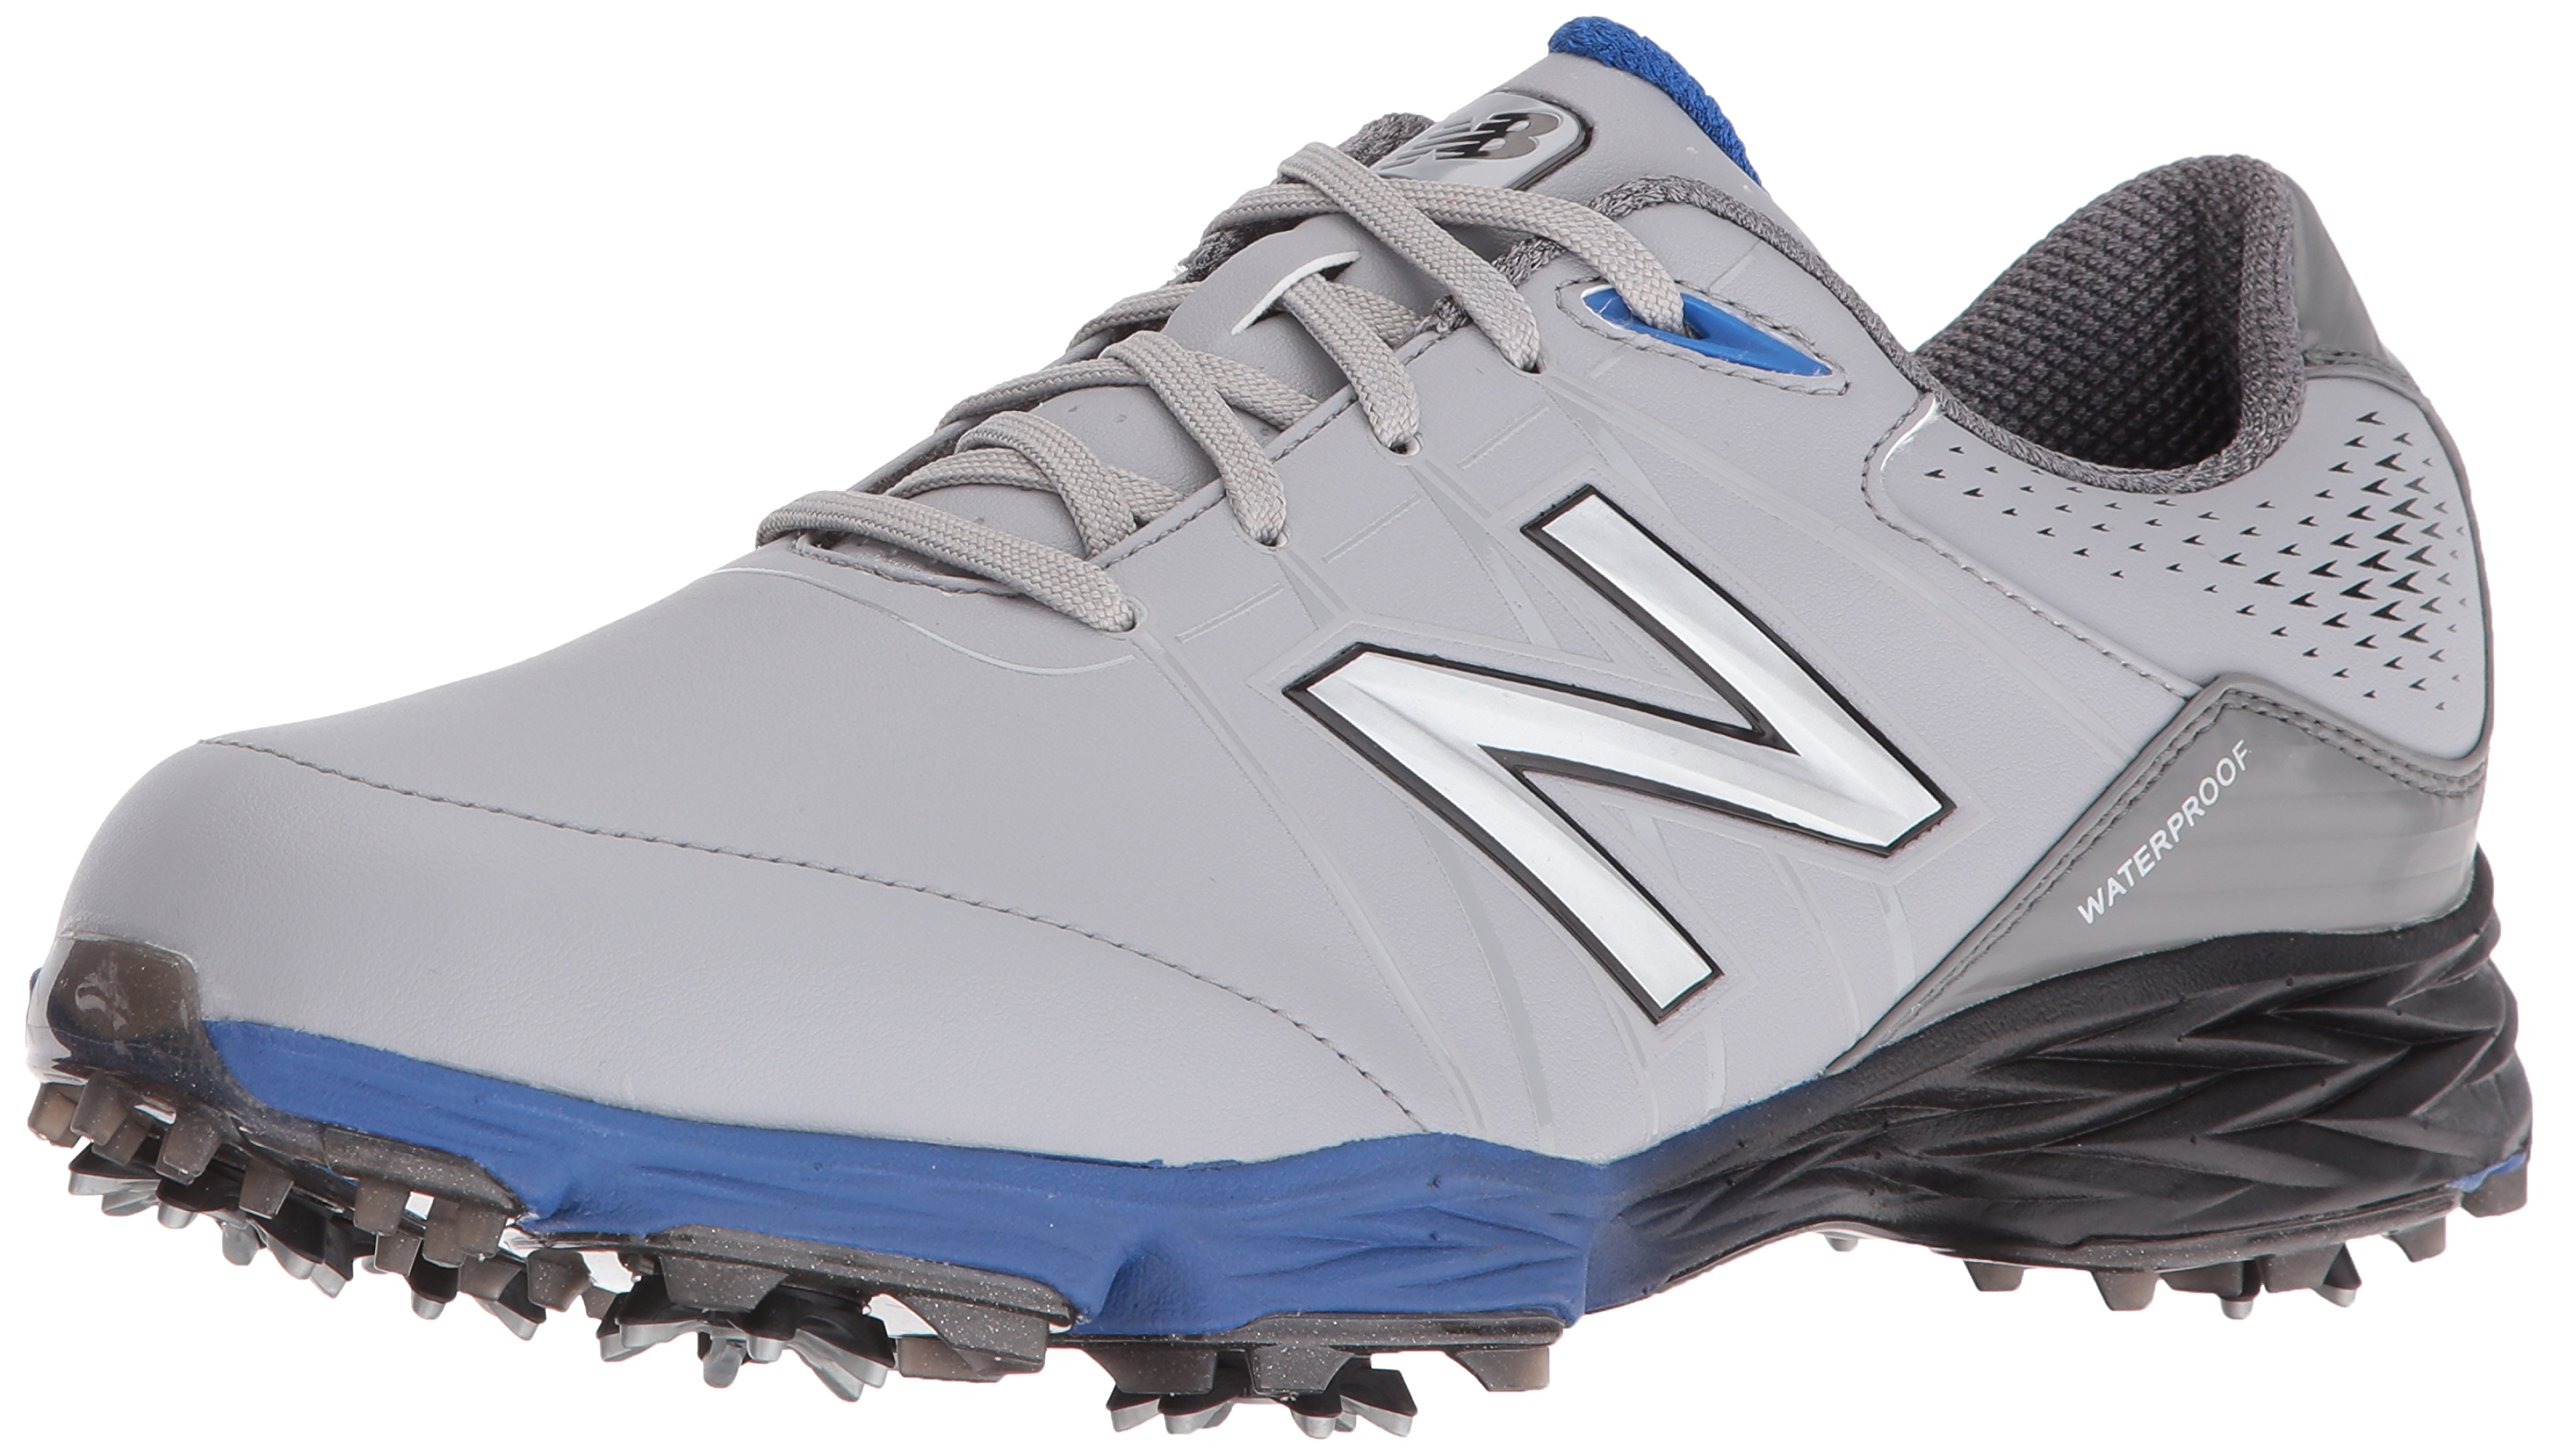 New Balance Men's NBG2004 Waterproof Spiked Comfort Golf Shoe, Grey/Blue, 12 M US by New Balance